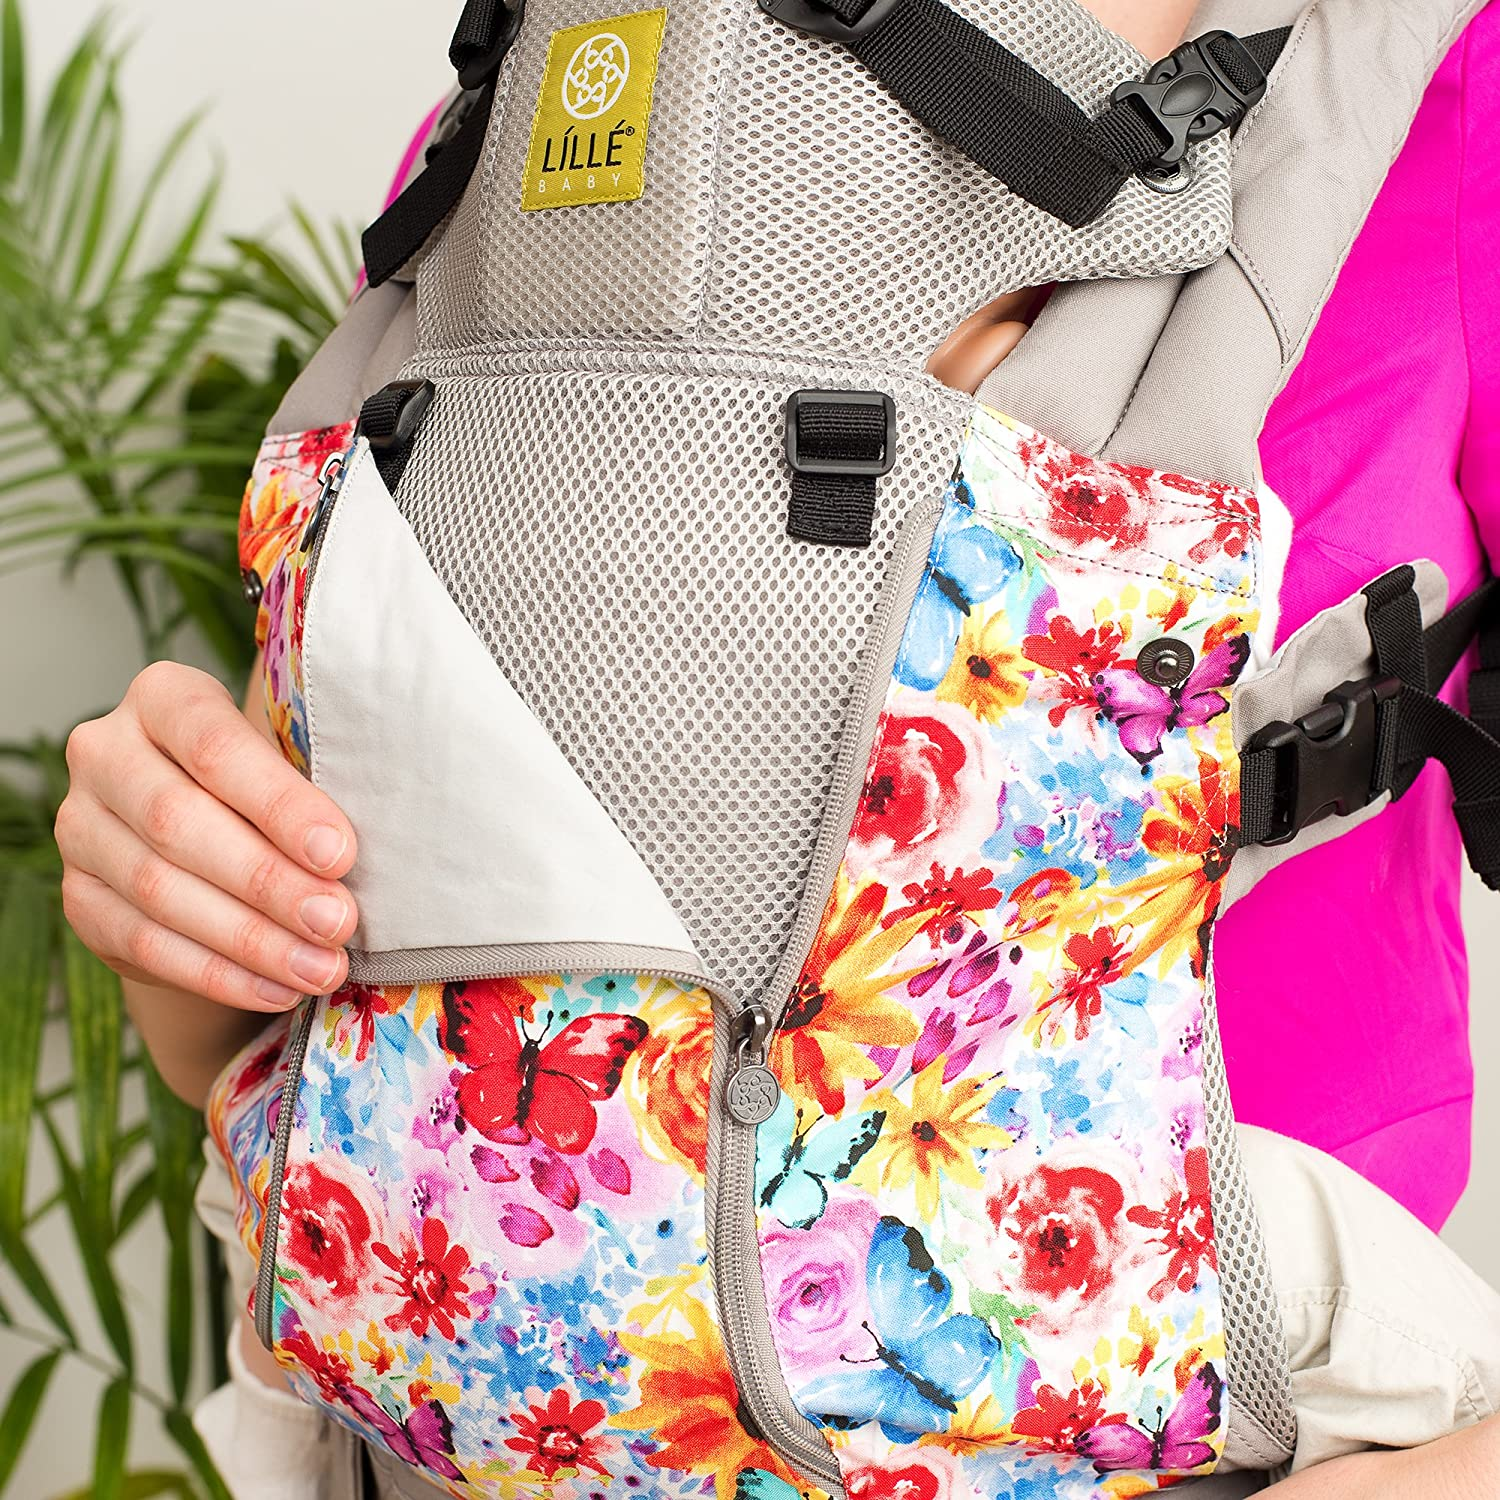 360/° Ergonomic Baby /& Child Carrier by LILLEbaby The COMPLETE All Seasons Black SIX-Position